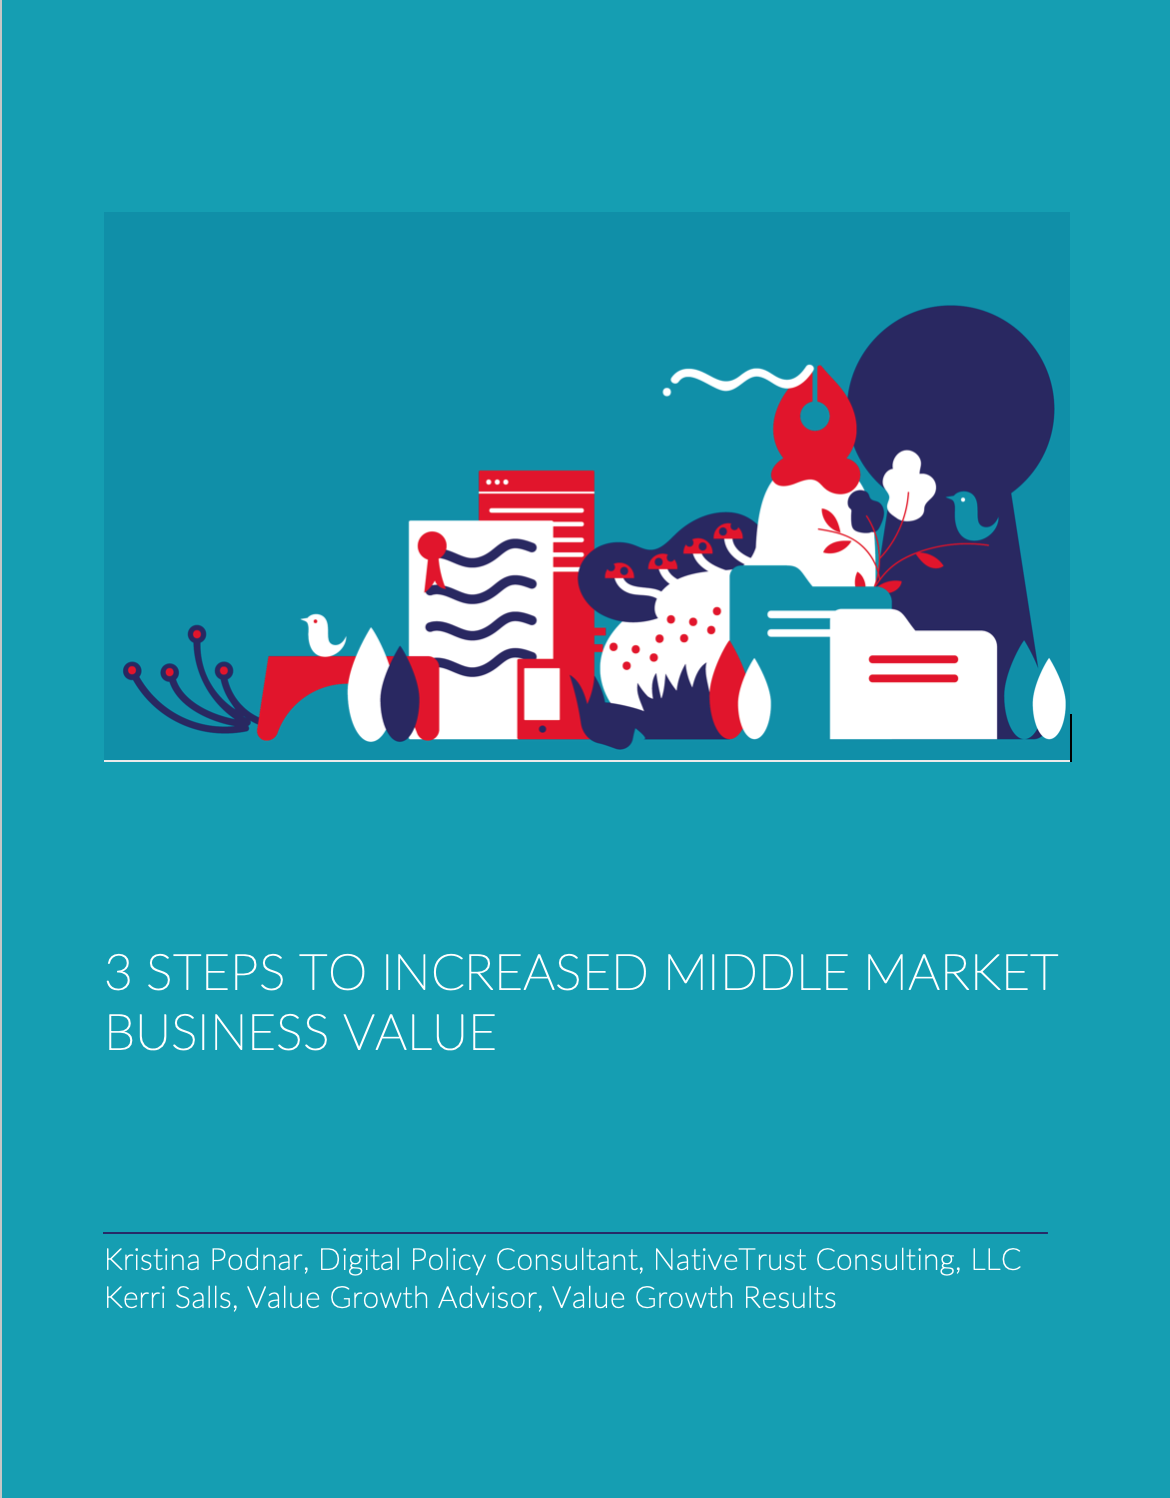 3 Steps to Increased Middle Market Business Value